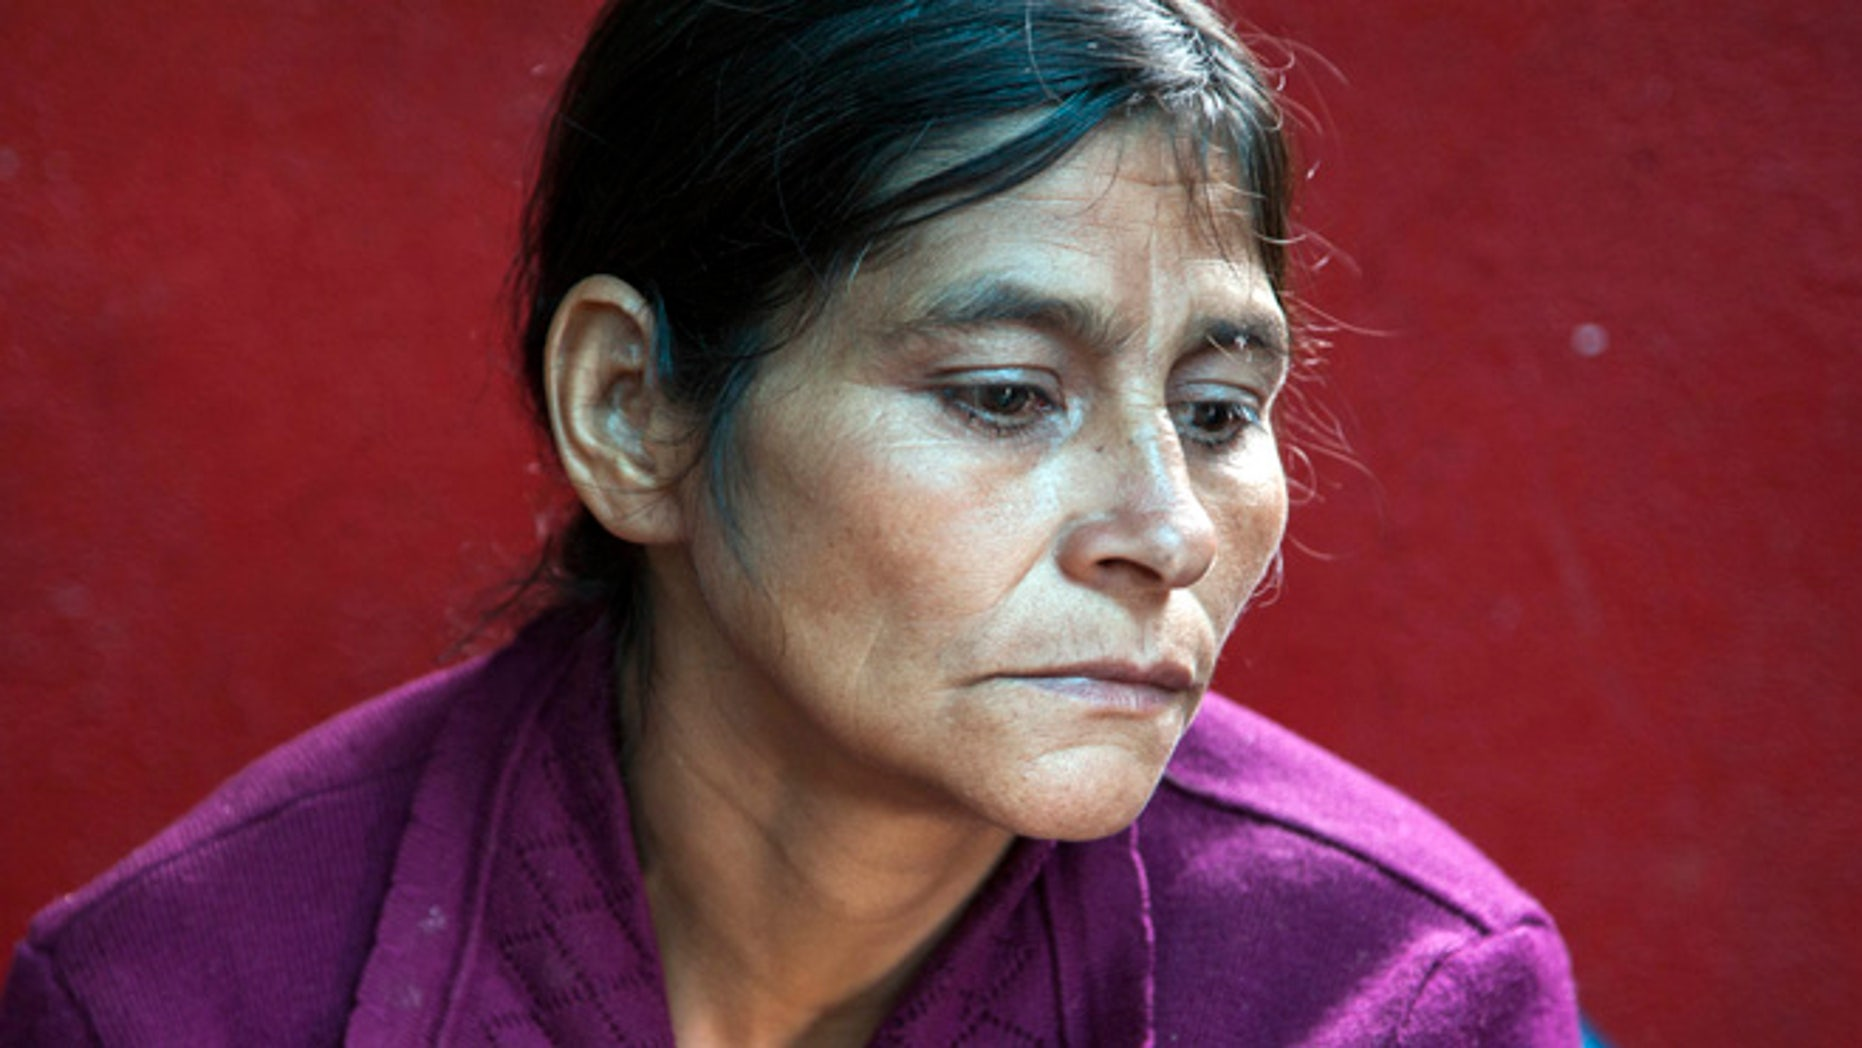 July 1, 2014: Cipriana Juarez Diaz, mother of Gilberto Francisco Ramos Juarez, a Guatemalan boy whose decomposed body was found in the Rio Grande Valley of South Texas, listens to her husband talk during an interview at their home in San Jose Las Flores, in the northern Cuchumatanes mountains of Guatemala.